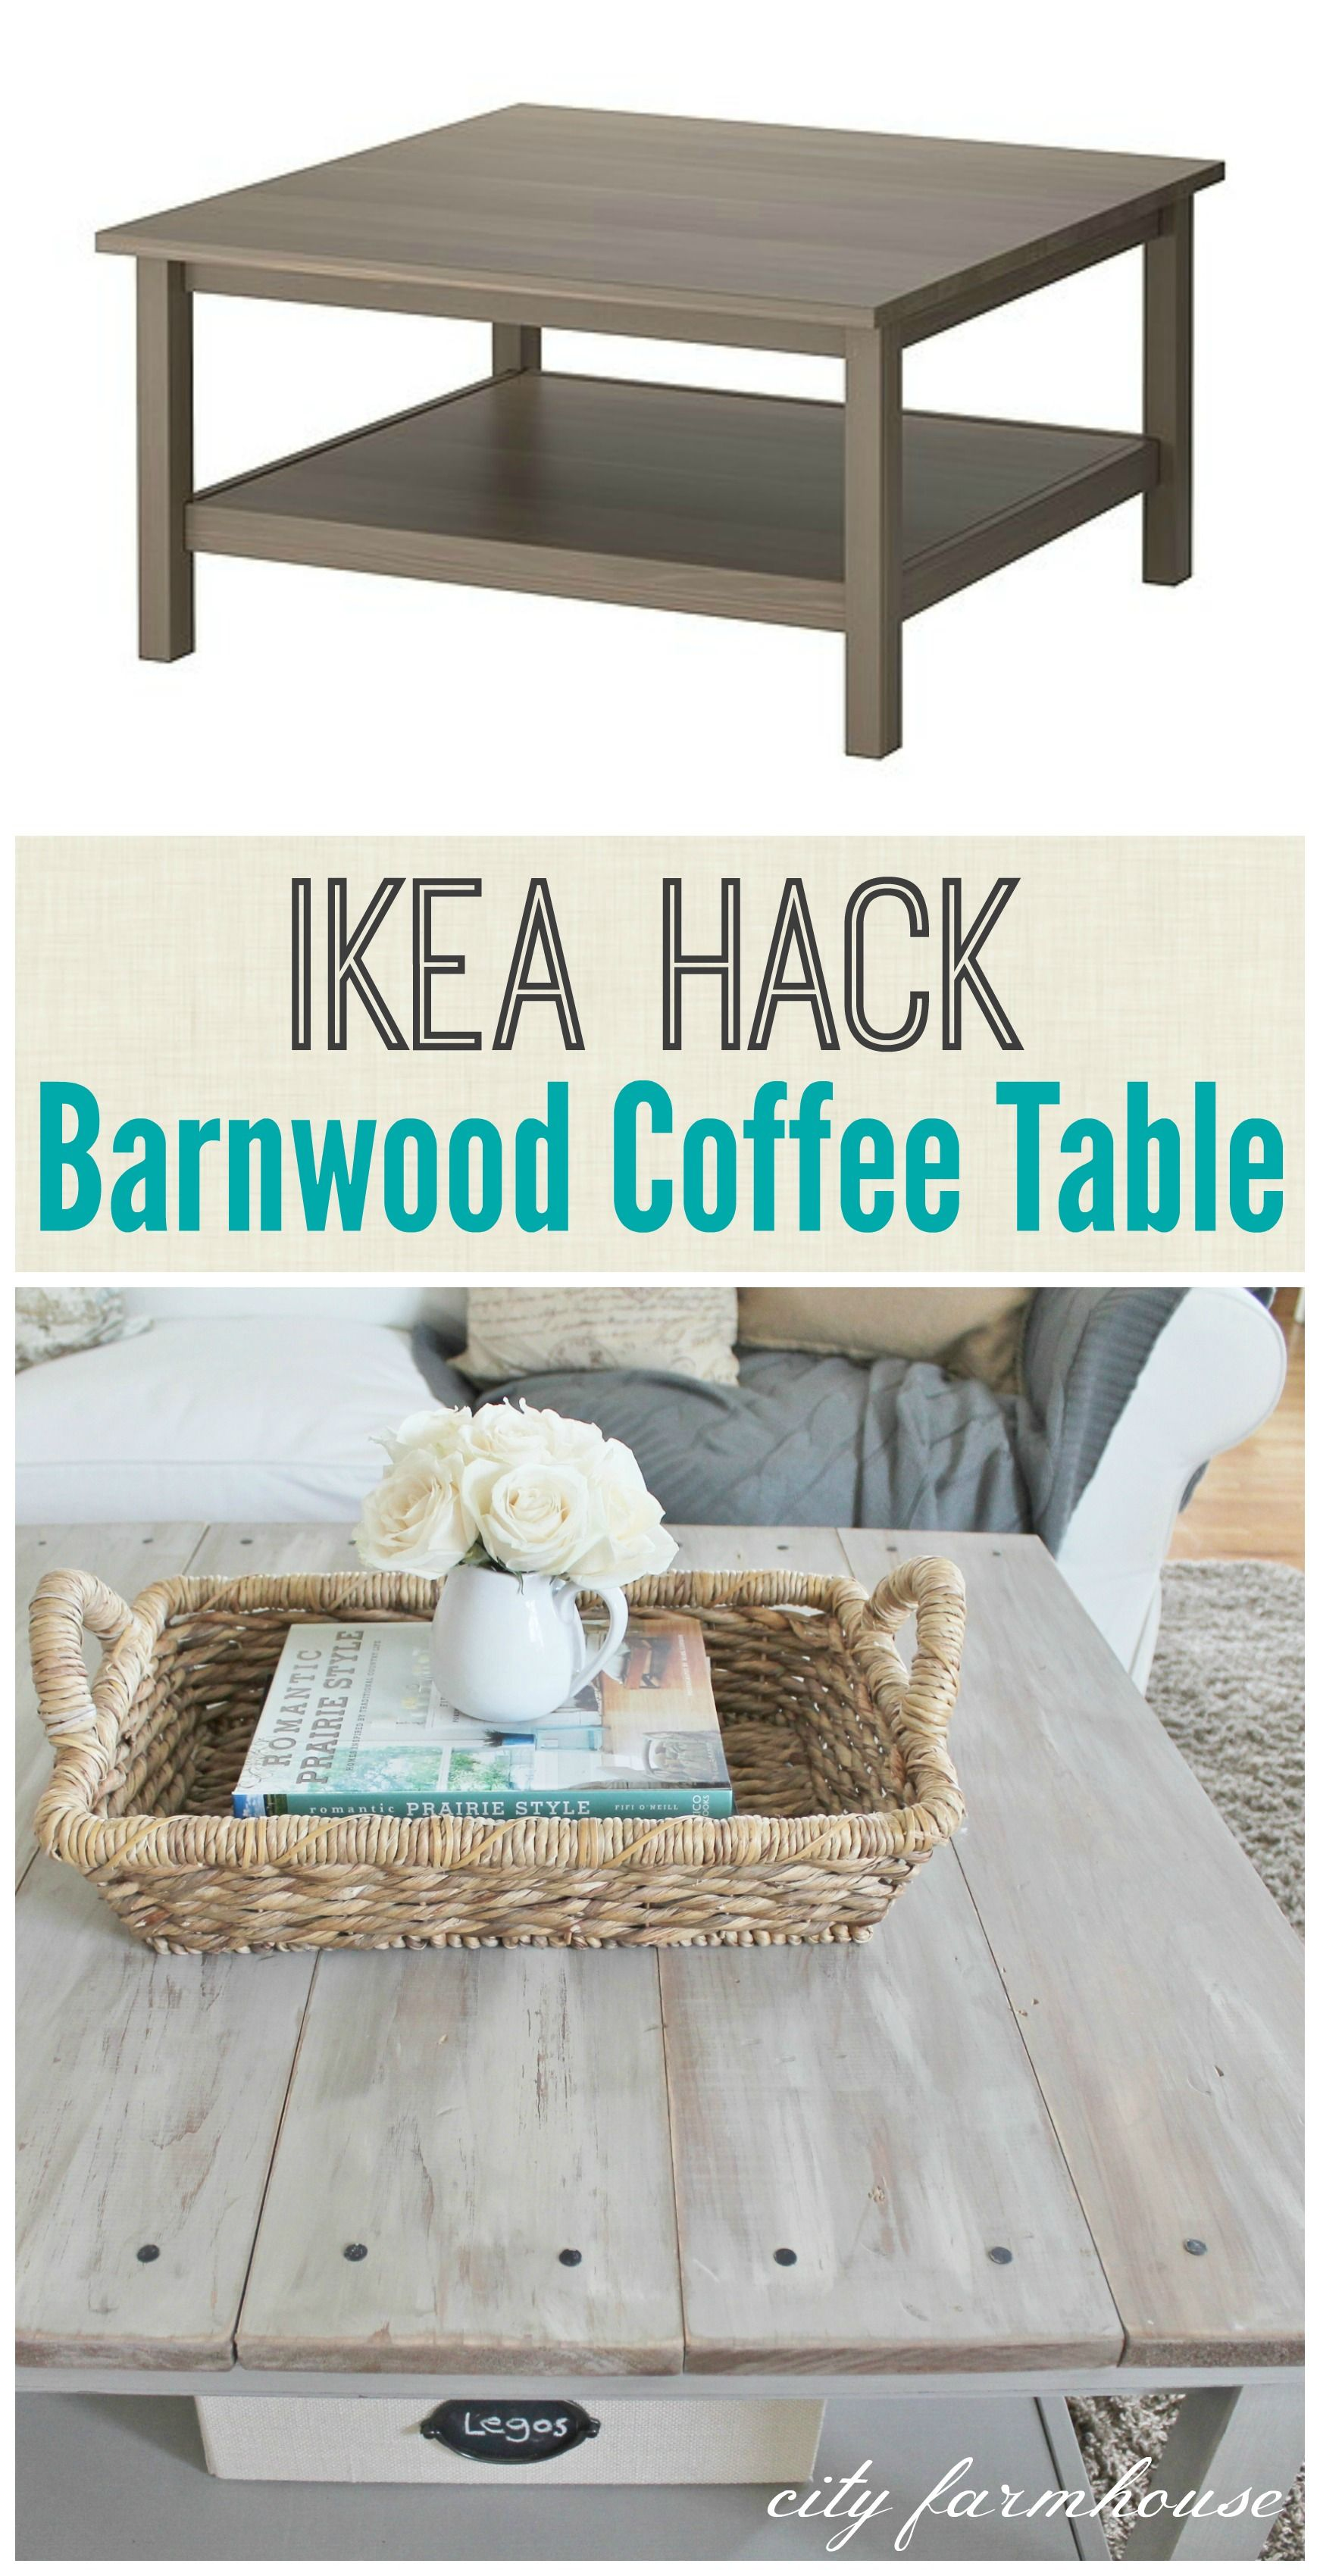 Ikea hacked barnboard coffee table tutorial paint ideas - Ikea diva futura ...